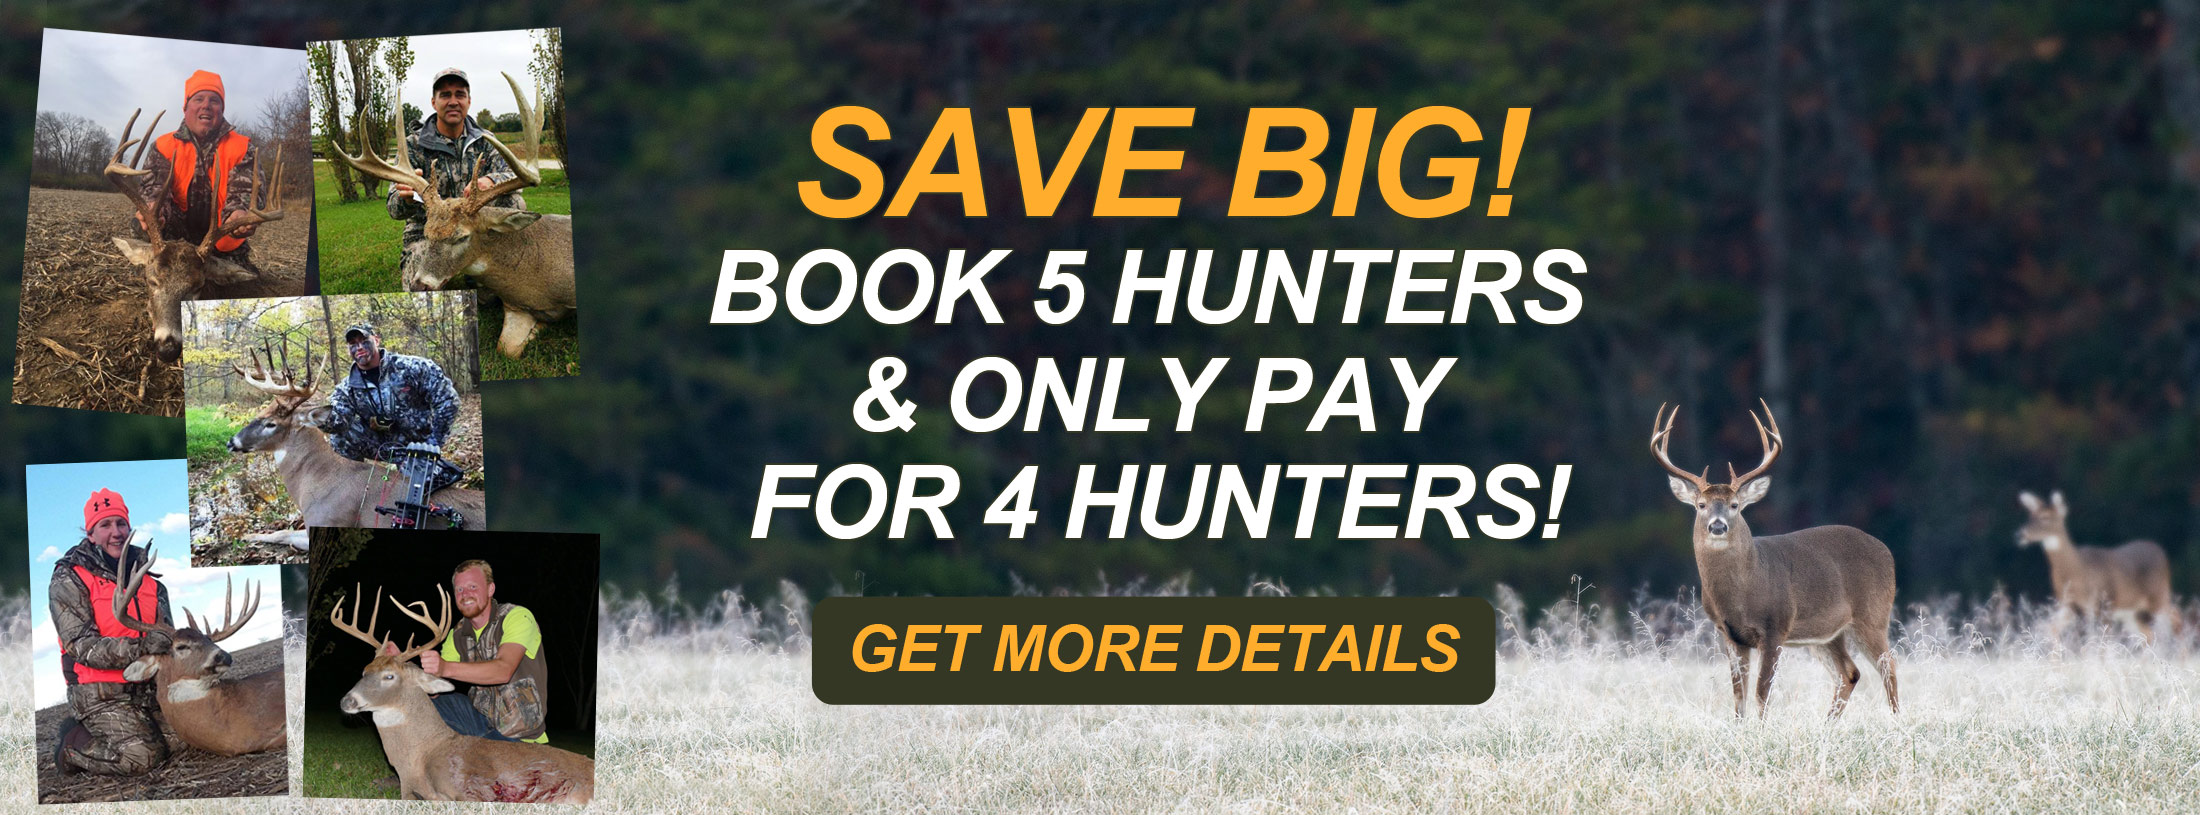 Missouri Deer Hunting | IMB Outfitters